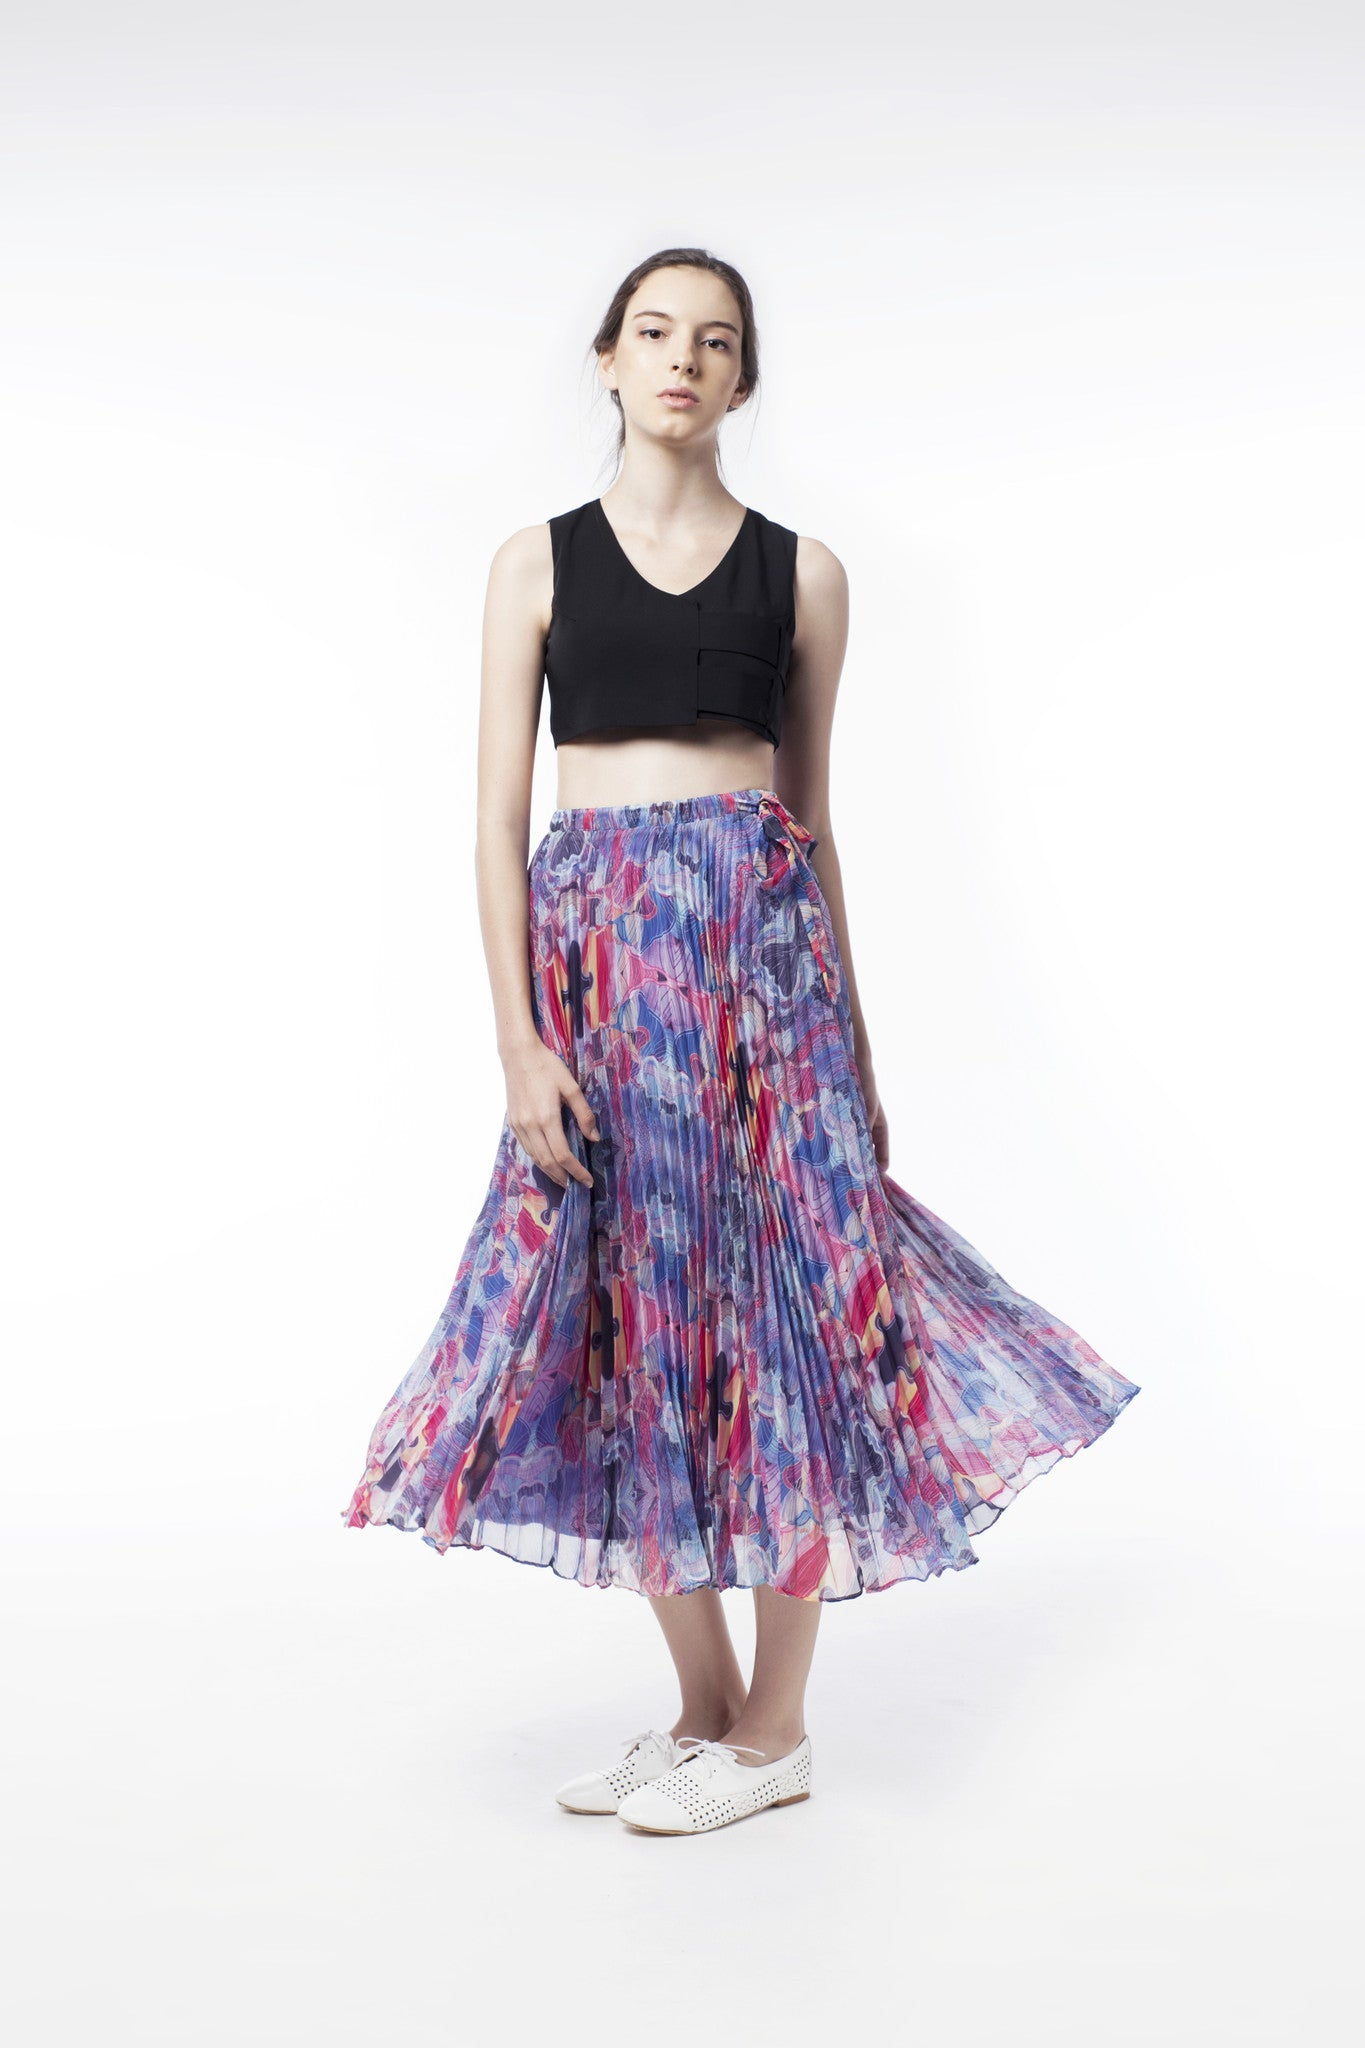 Kaleidoscopic Print Pleat Skirt - GlanceZ   - 2